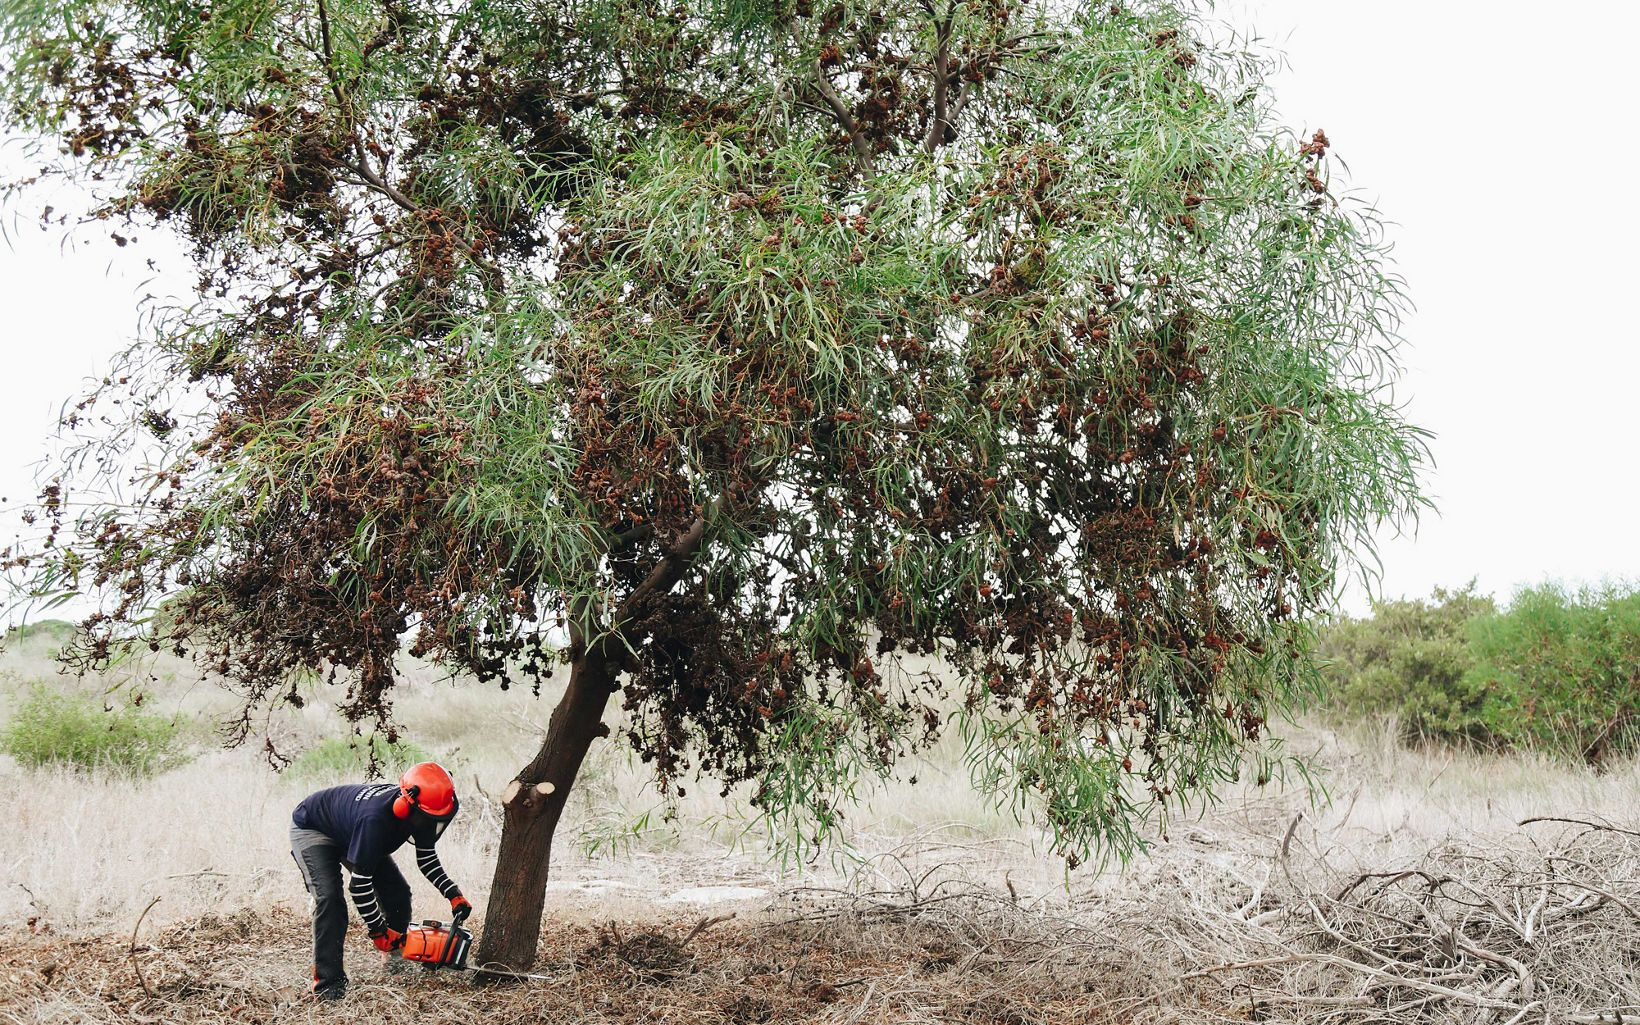 Clearing a non-native tree to help improve water supply